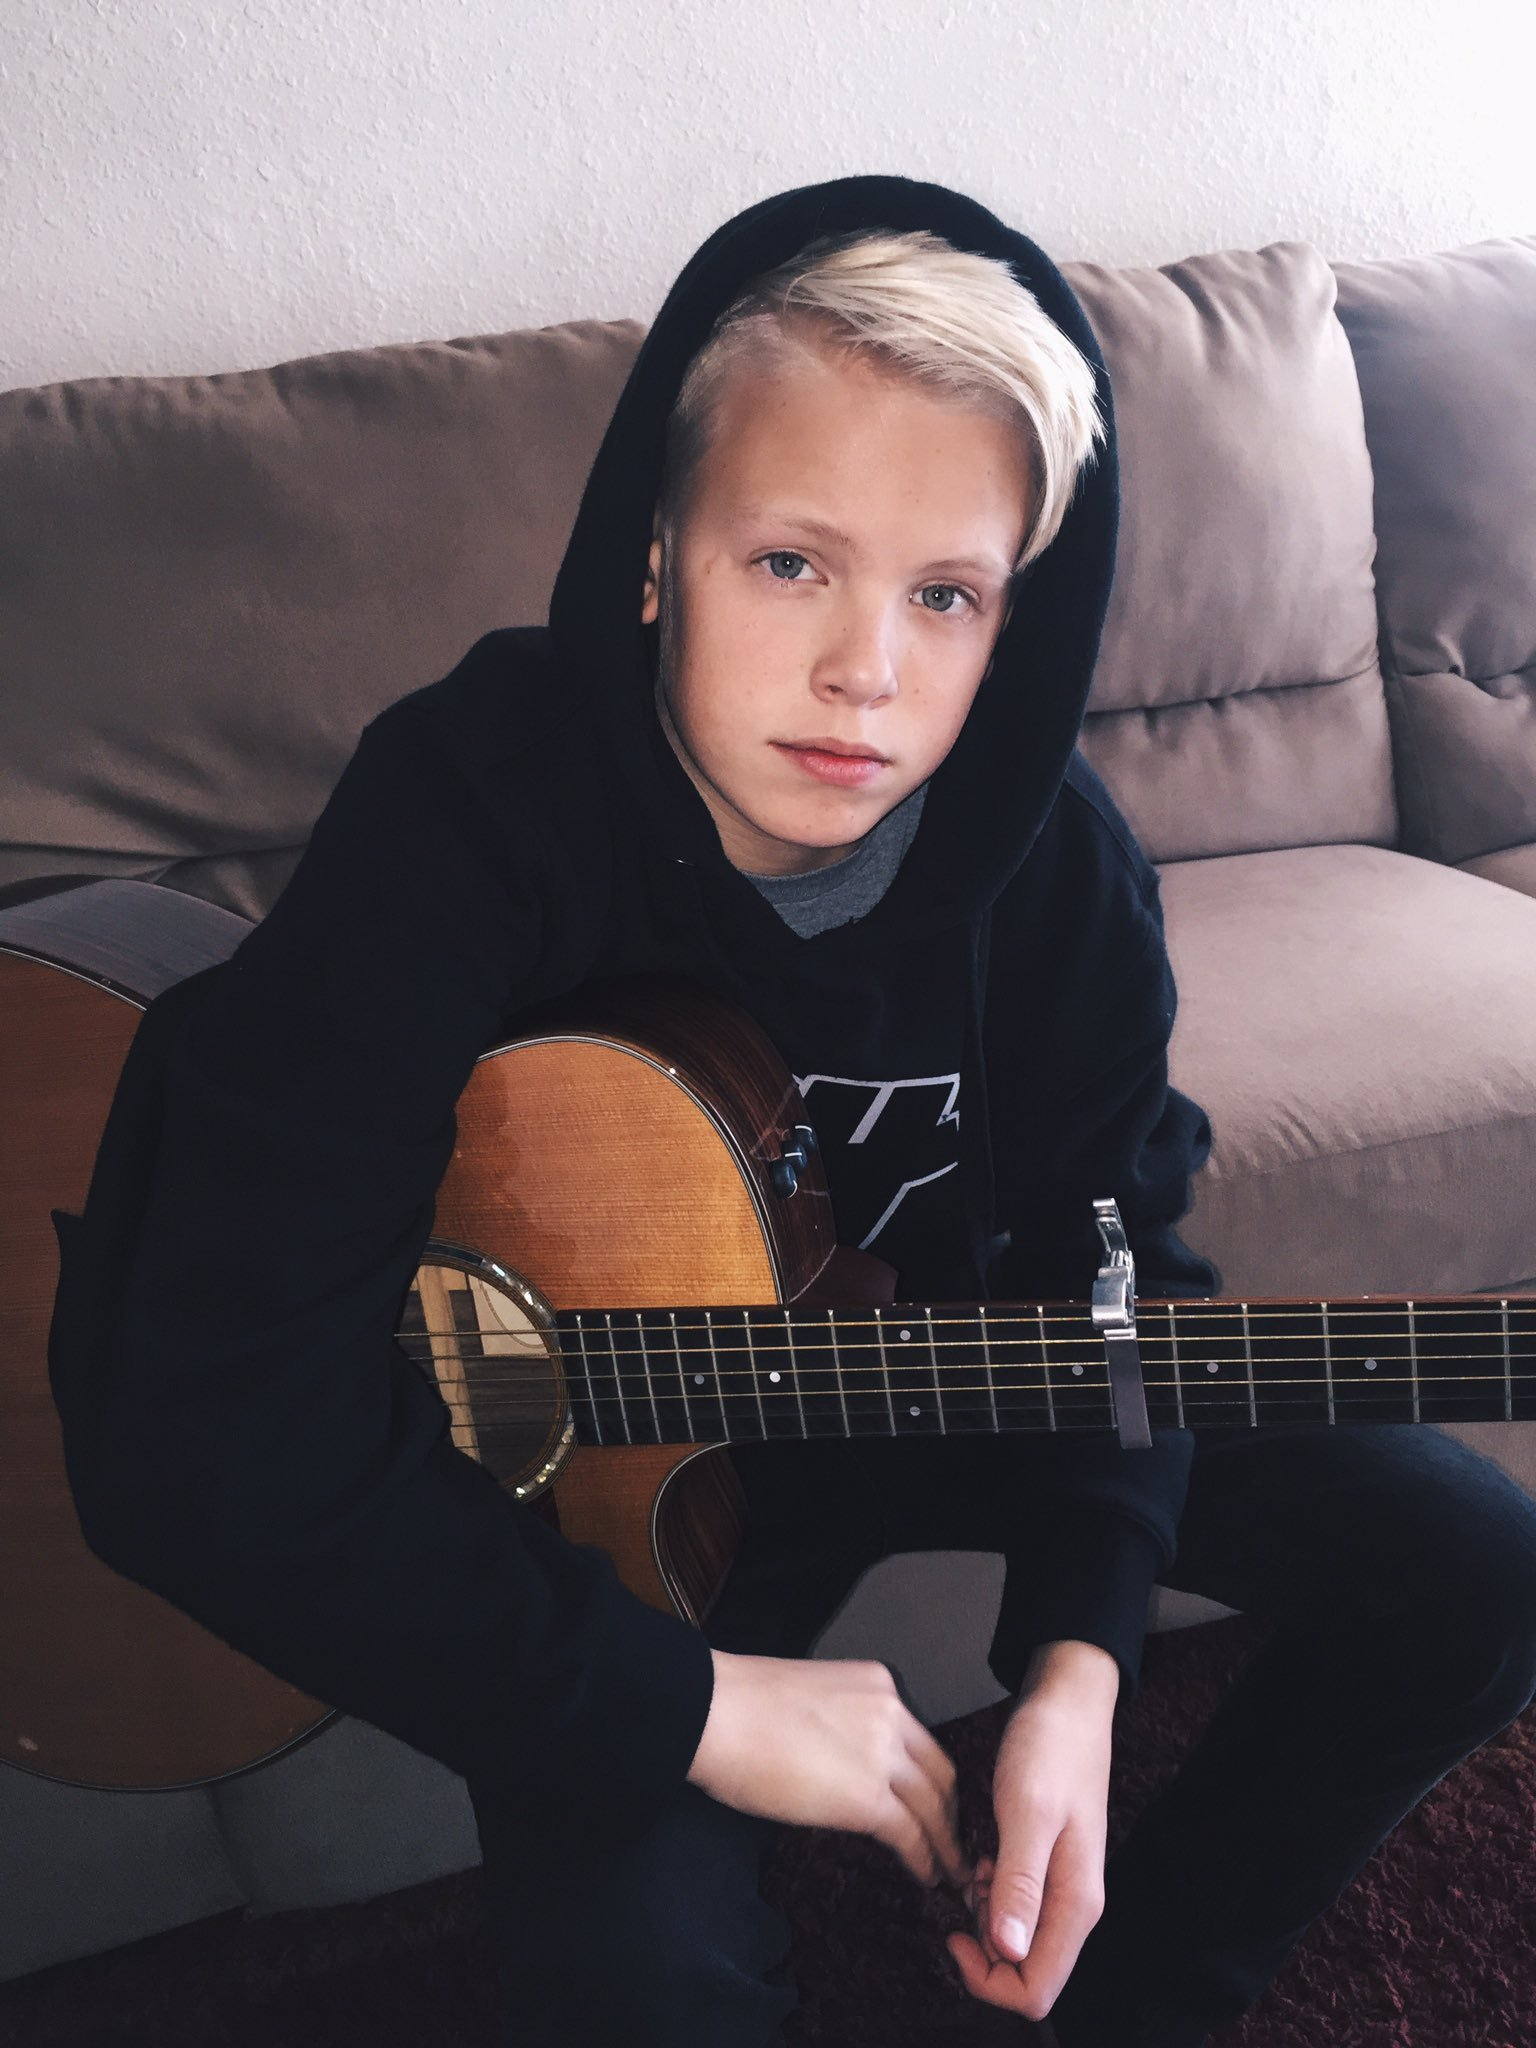 Carson Lueders Twitter Musicallyapp - Sitting , HD Wallpaper & Backgrounds